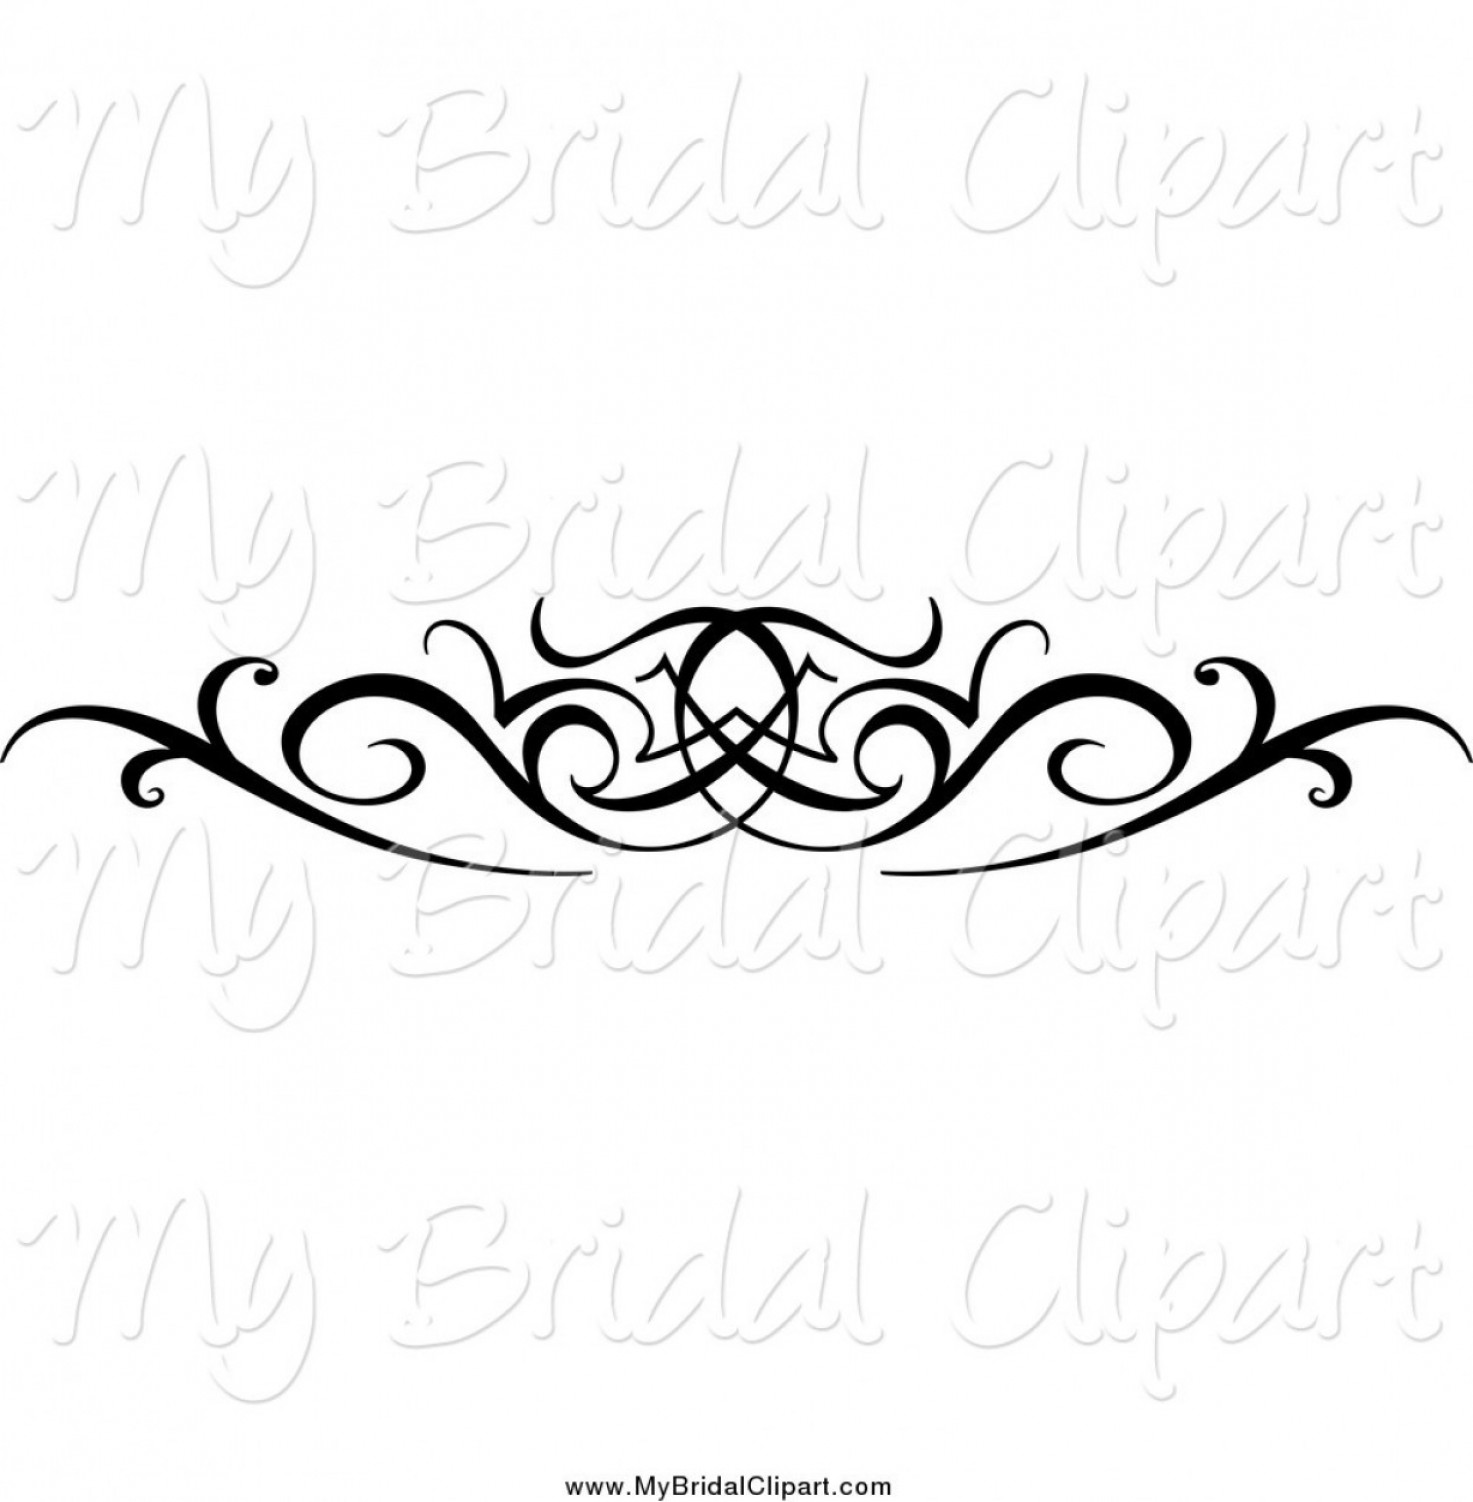 Gold Wedding Swirl Vector: Black Swirl Design Clip Art Free Bridal Clipart Of A Black And White Swirl Wedding Design Element By Vector Tradition Sm